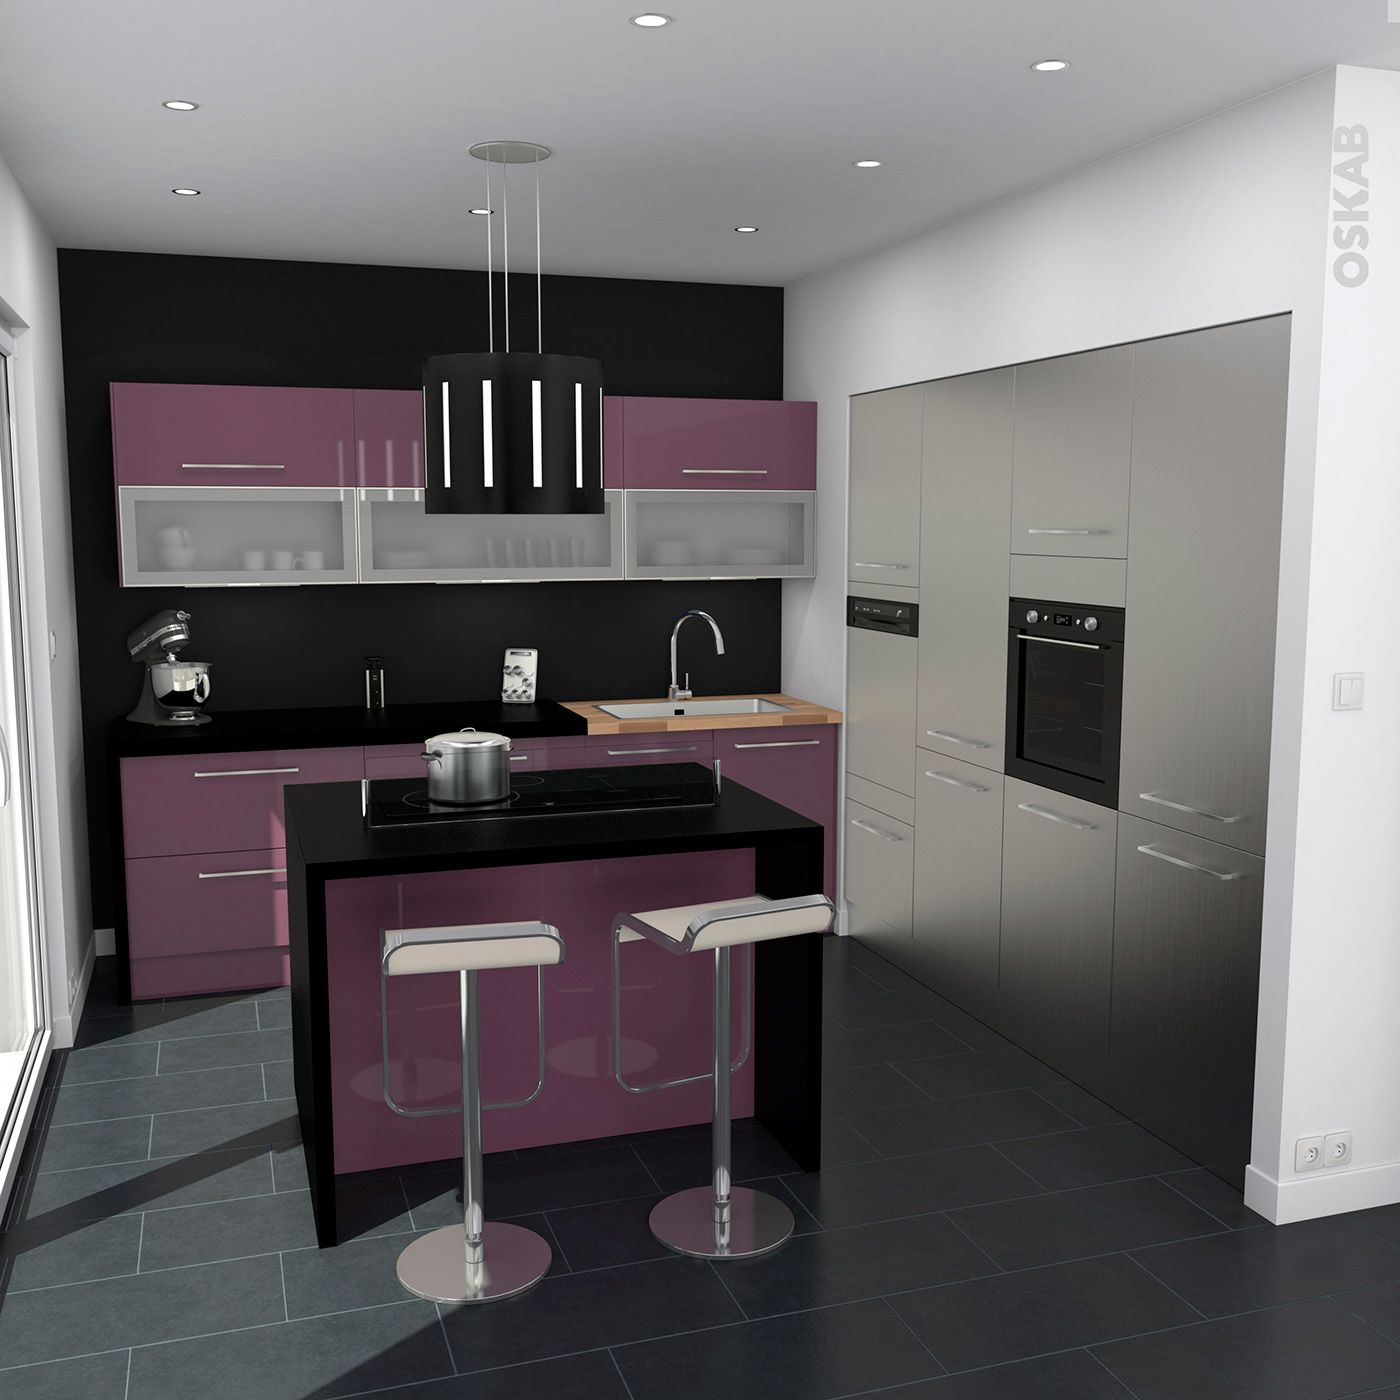 cuisine aubergine mod le keria aubergine brillant. Black Bedroom Furniture Sets. Home Design Ideas